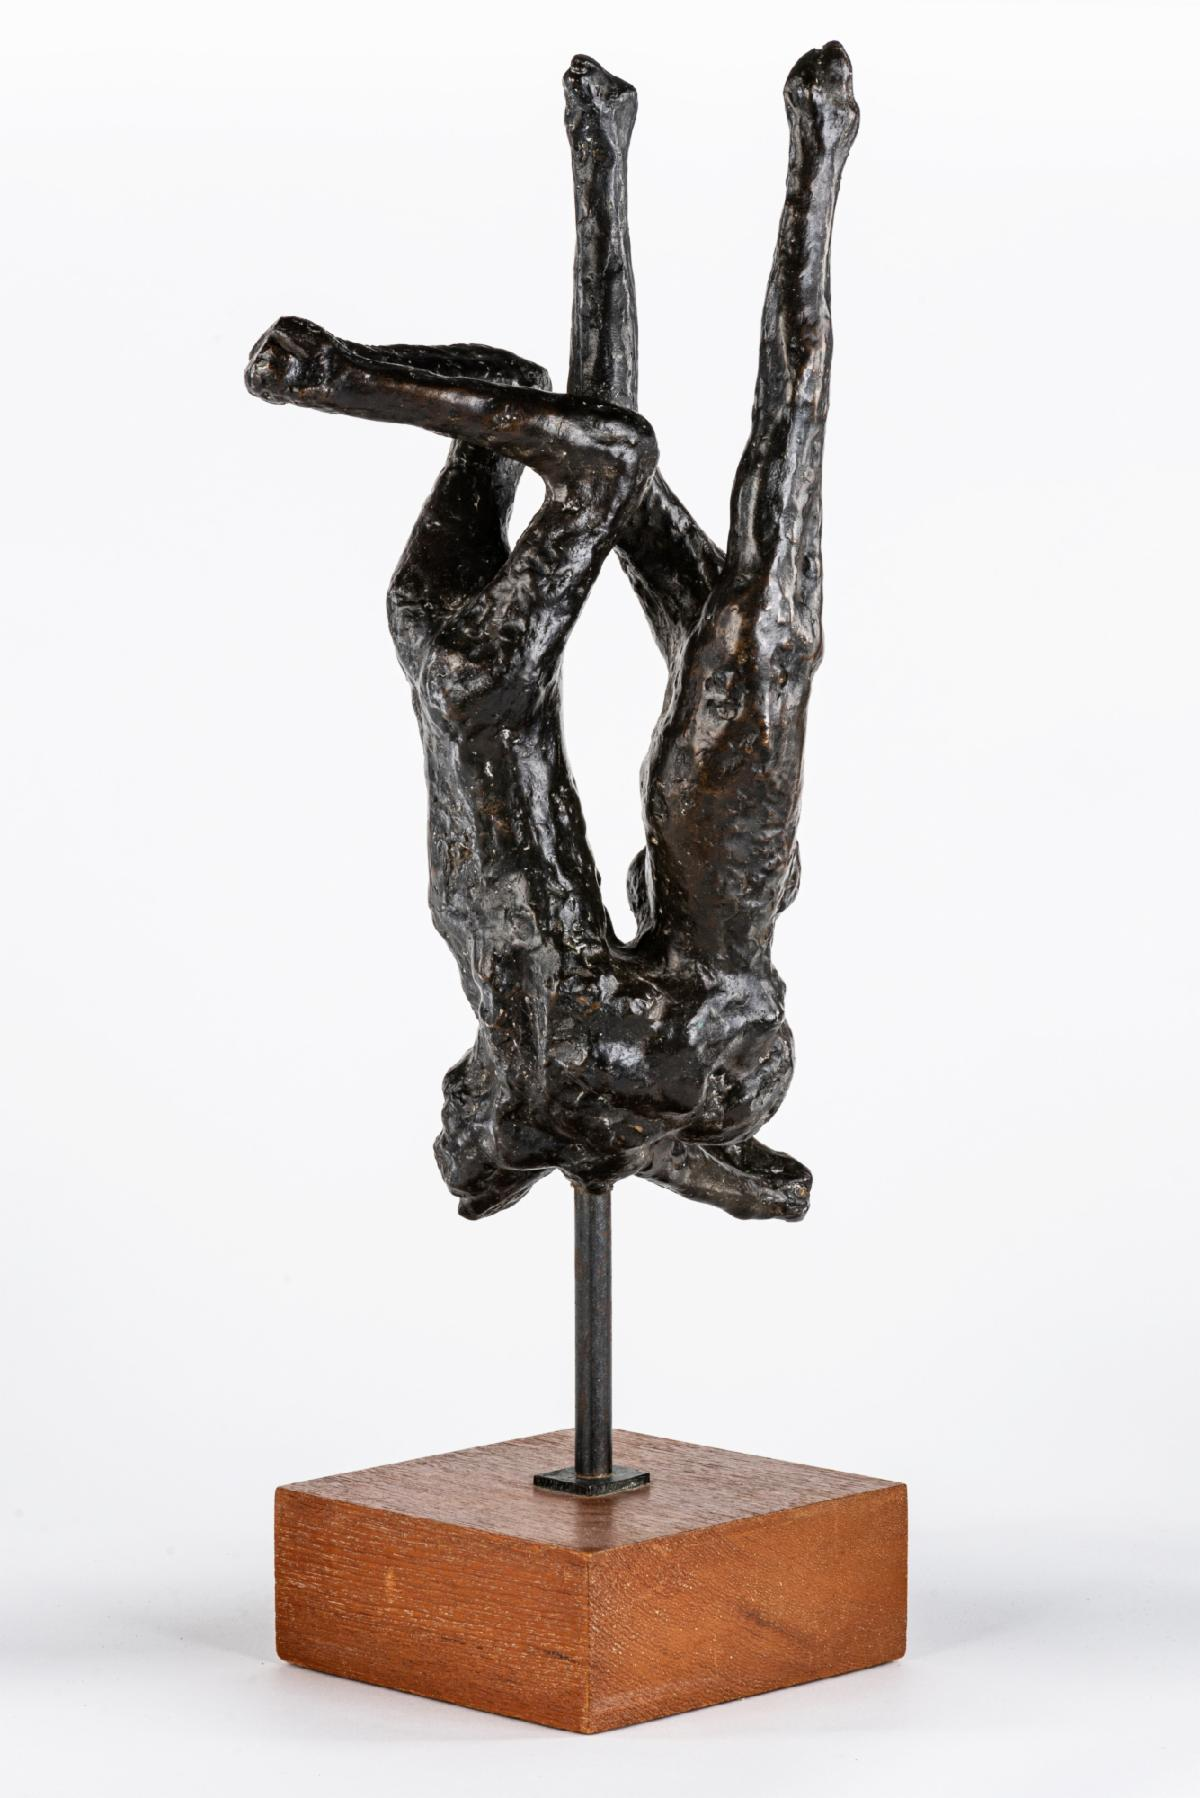 DIVERS - Ralph Brown 1928-2013